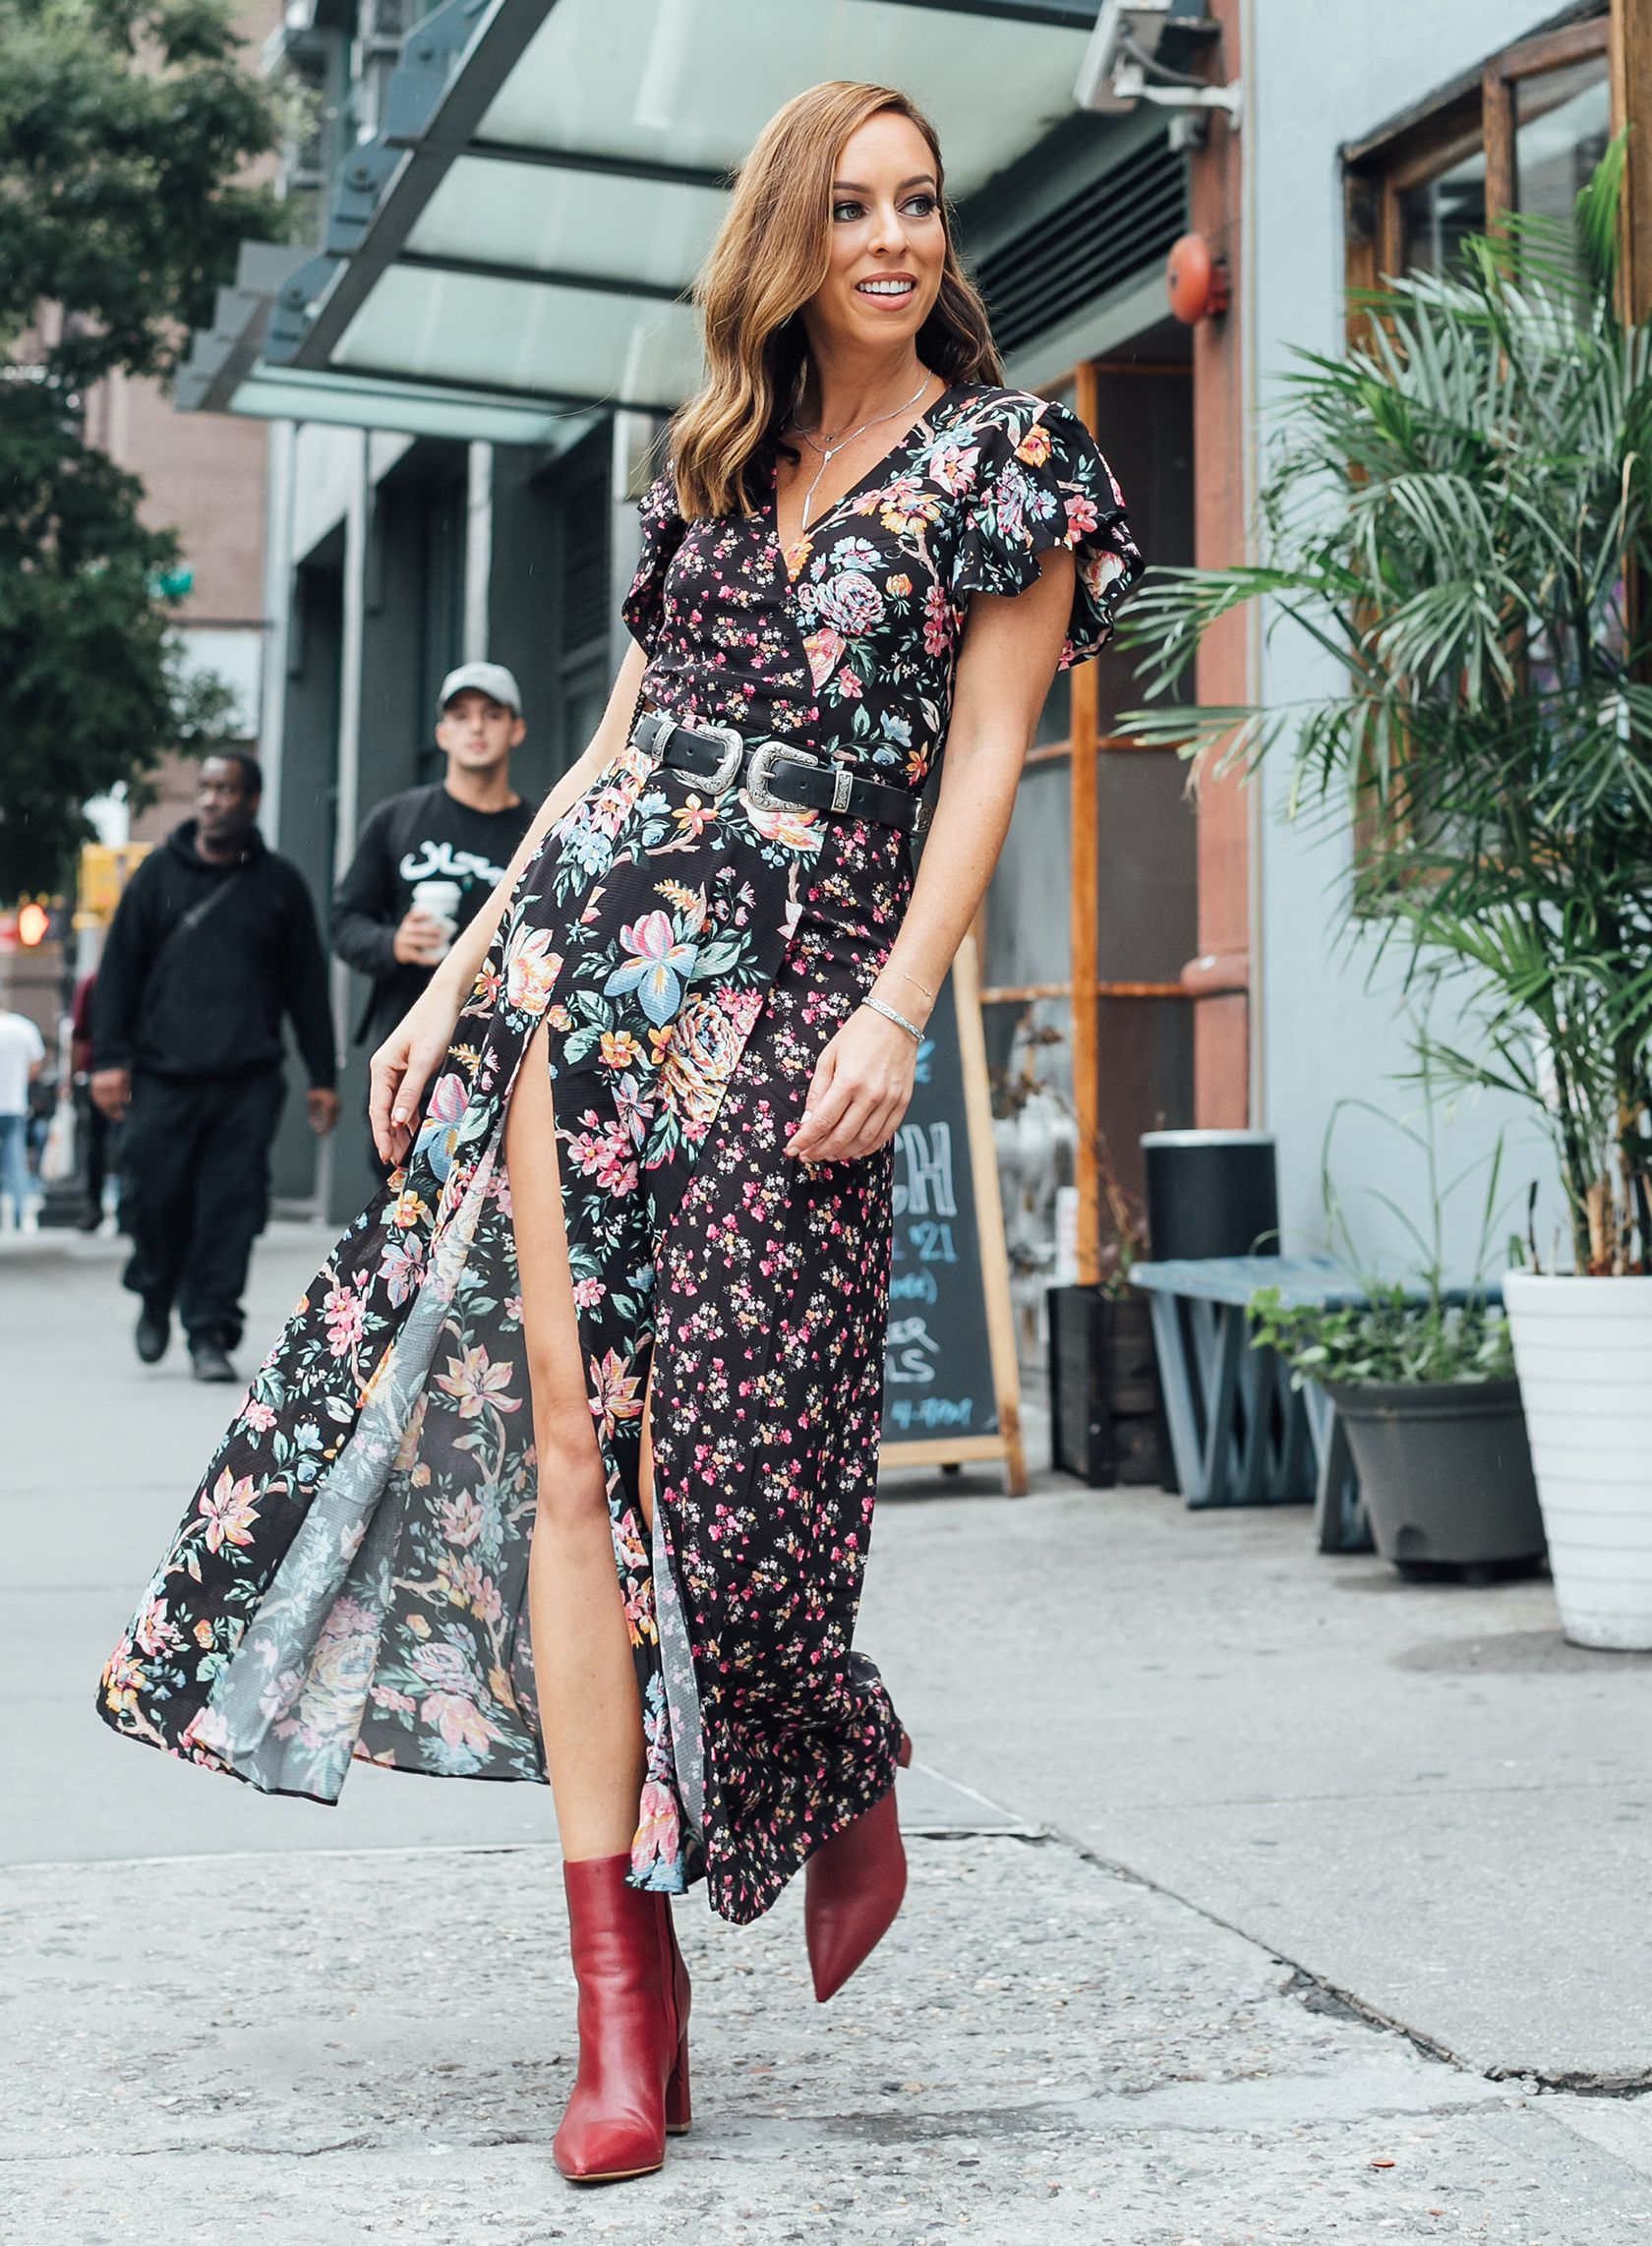 a93b84ca1748 Sydne Style wears french connection floral maxi dress for fall boho trend   florals  western  booties  sydnesummer